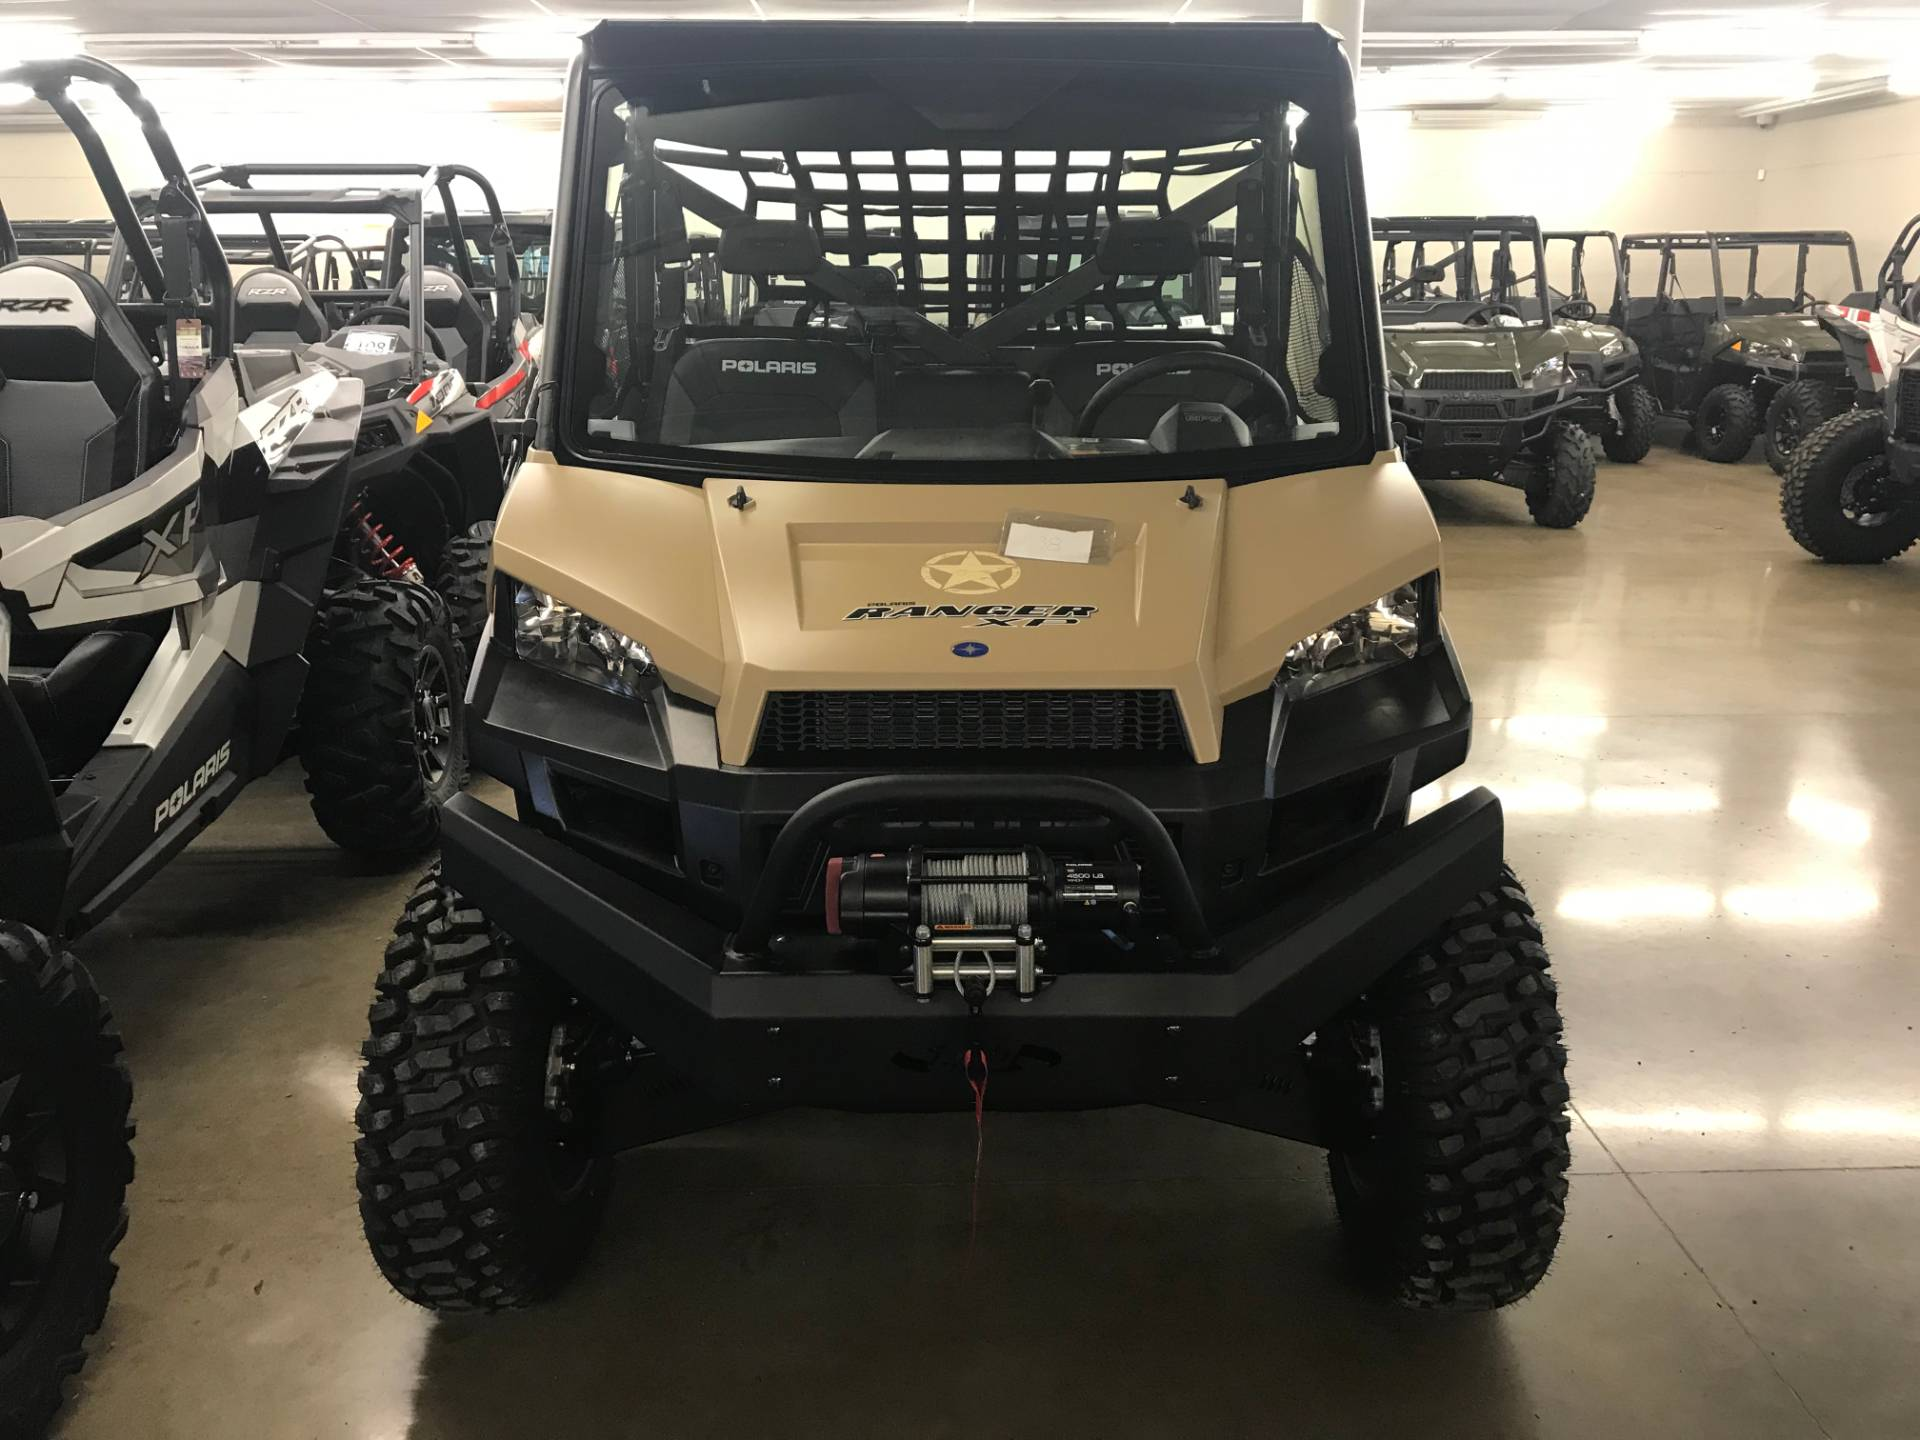 Polaris Ranger Xp 900 >> 2019 Polaris Ranger Xp 900 Eps In Chicora Pennsylvania